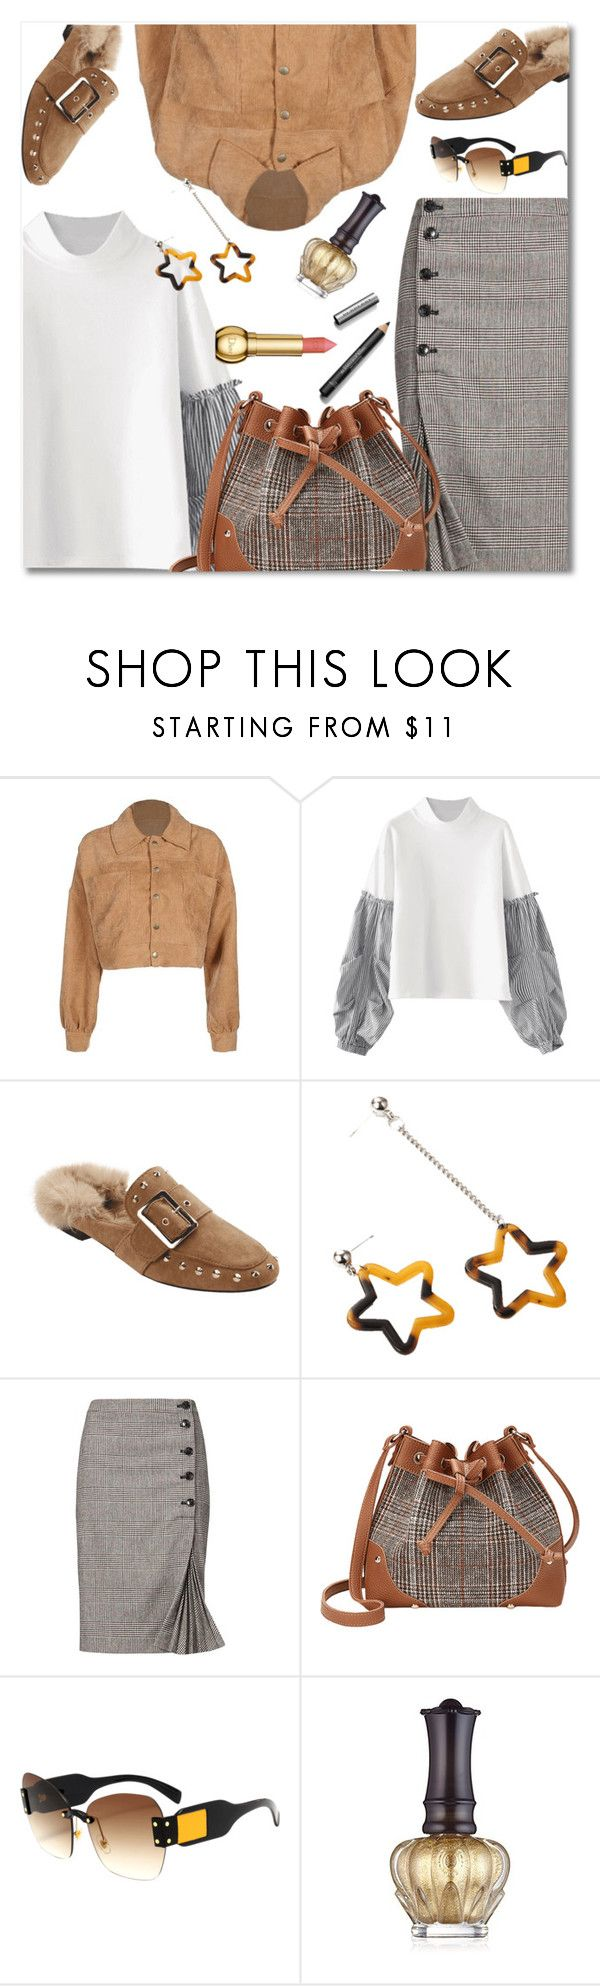 """""""Untitled #471"""" by dzenanlevic99 ❤ liked on Polyvore featuring Banana Republic, Anna Sui and Burberry"""